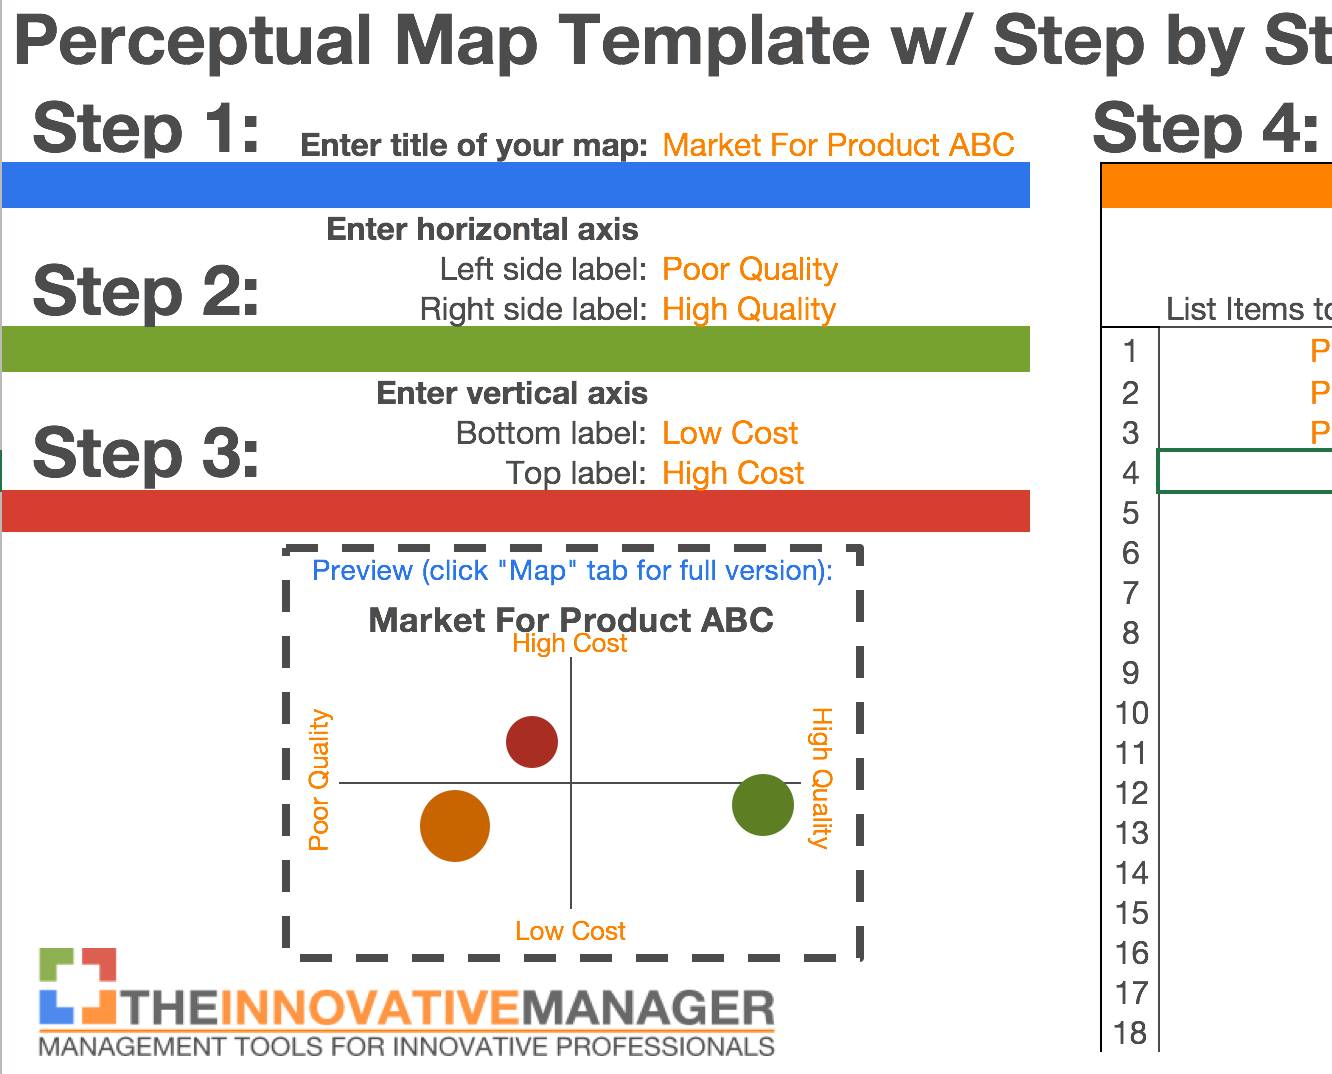 Perceptual Map Template